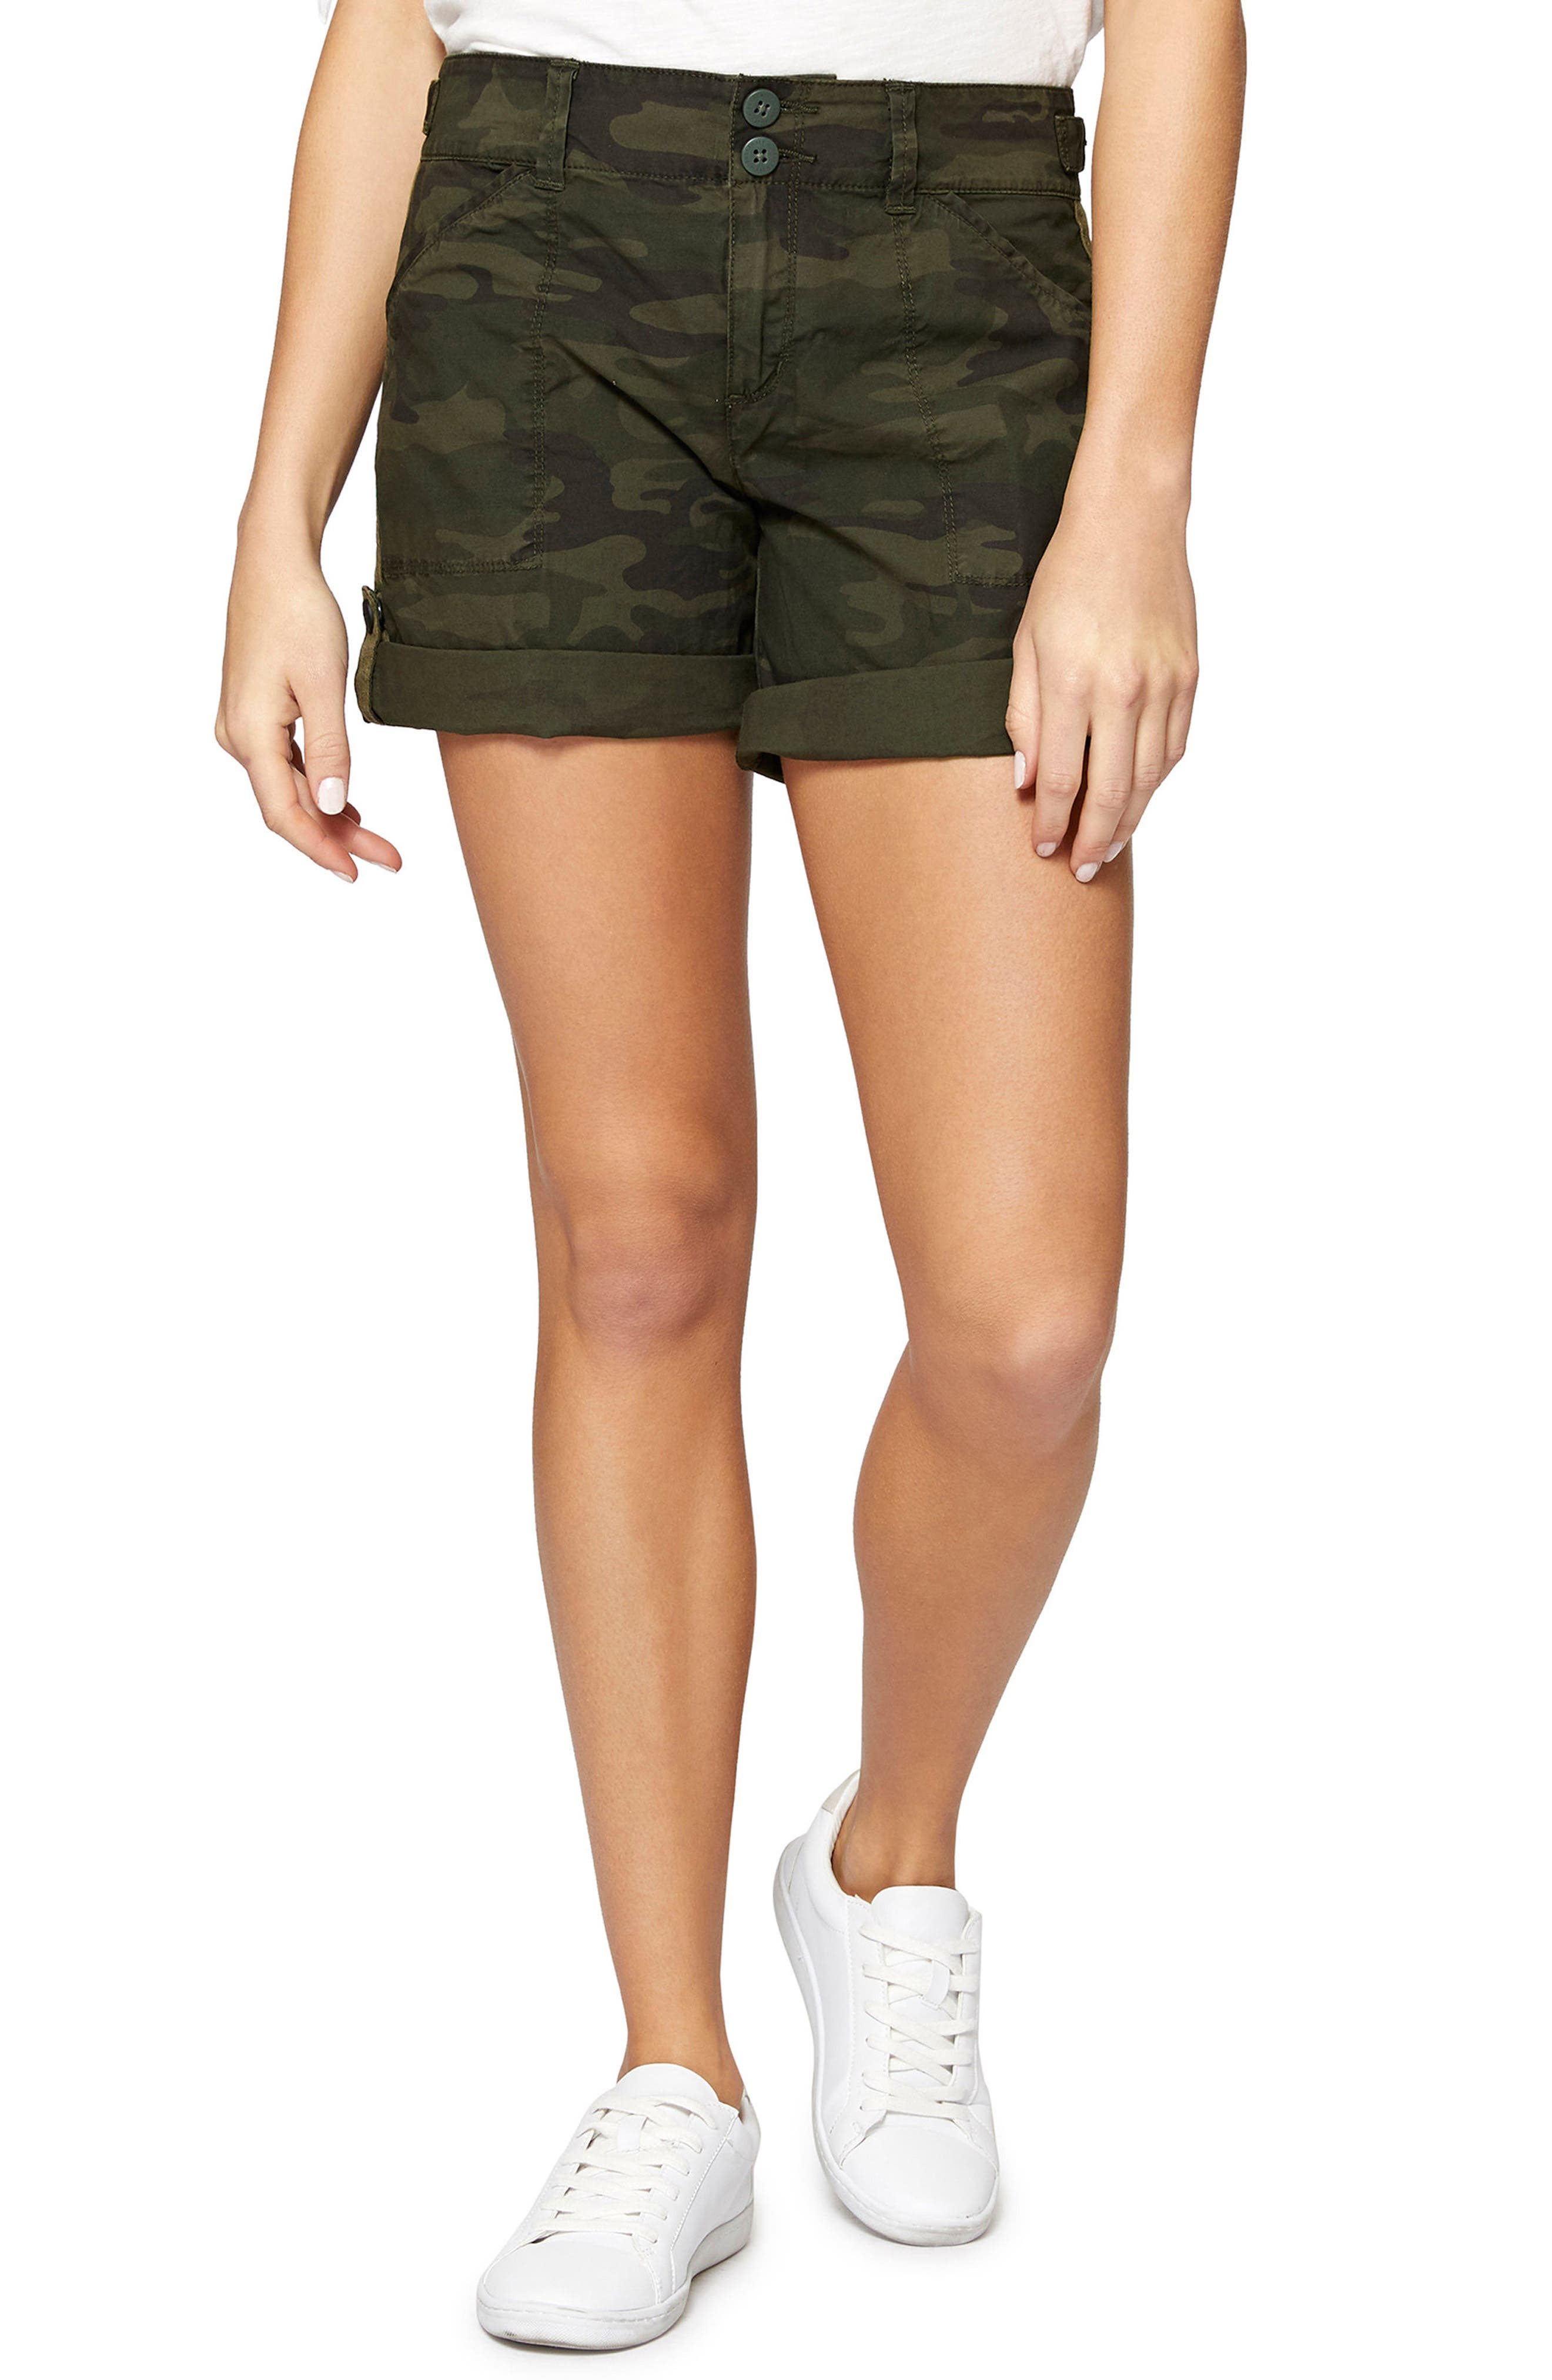 Wanderer Camouflage Shorts,                             Main thumbnail 1, color,                             Mother Nature Camo